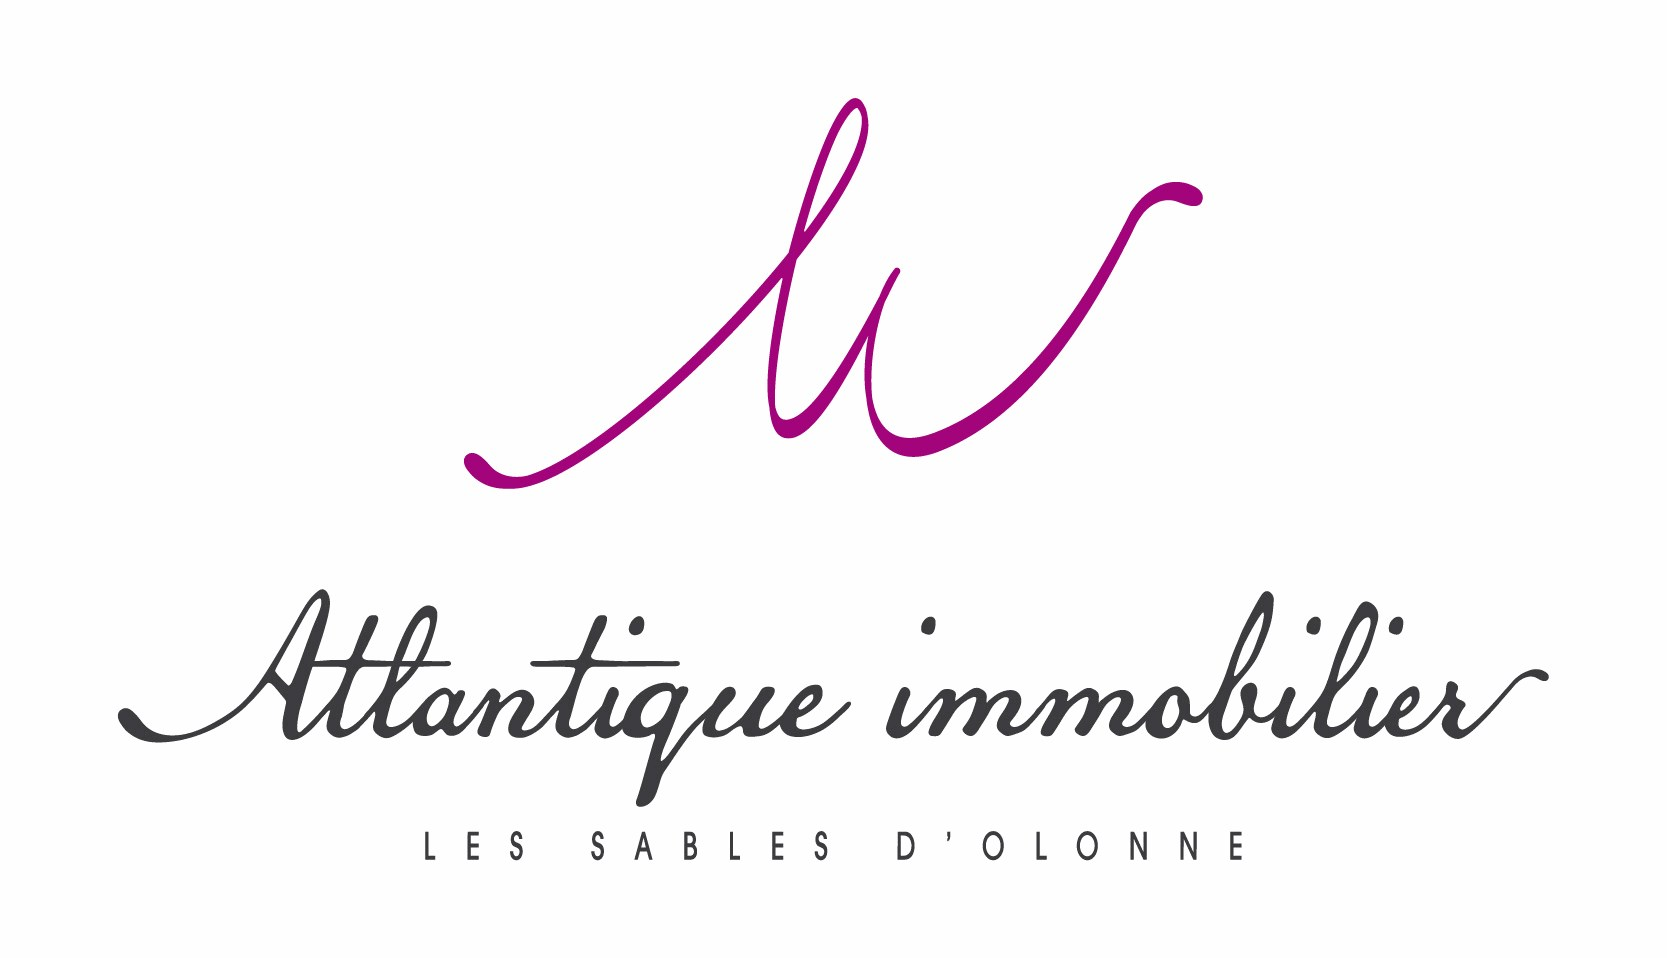 Atlantique immobilier agence immobili re les sables d for Agence immobiliere 85100